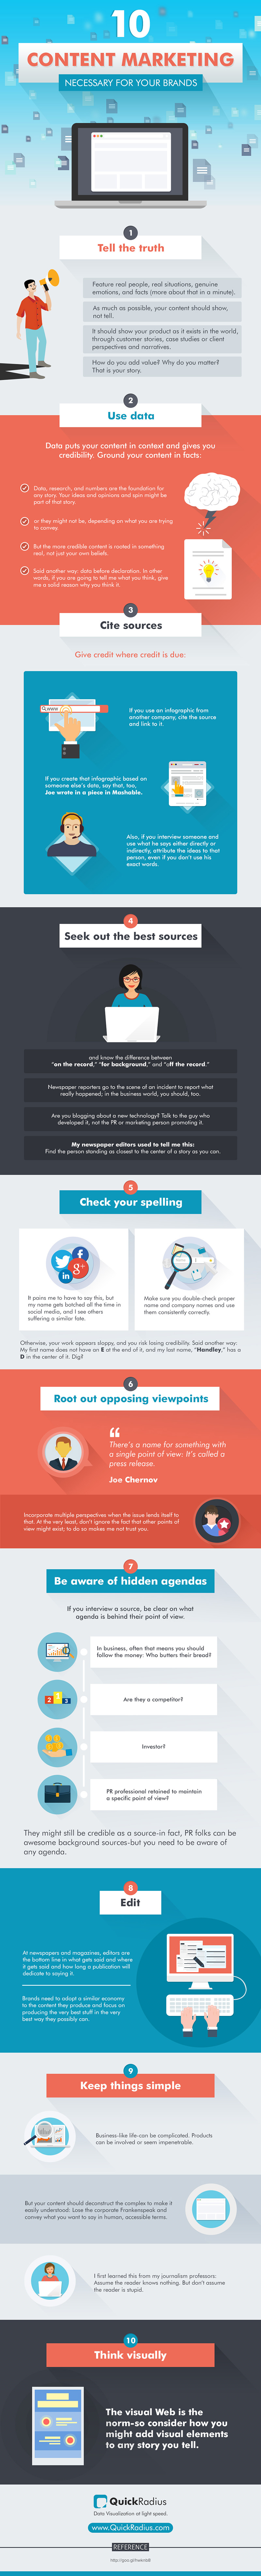 10-content-marketing-necessary-for-your-brands-infographic